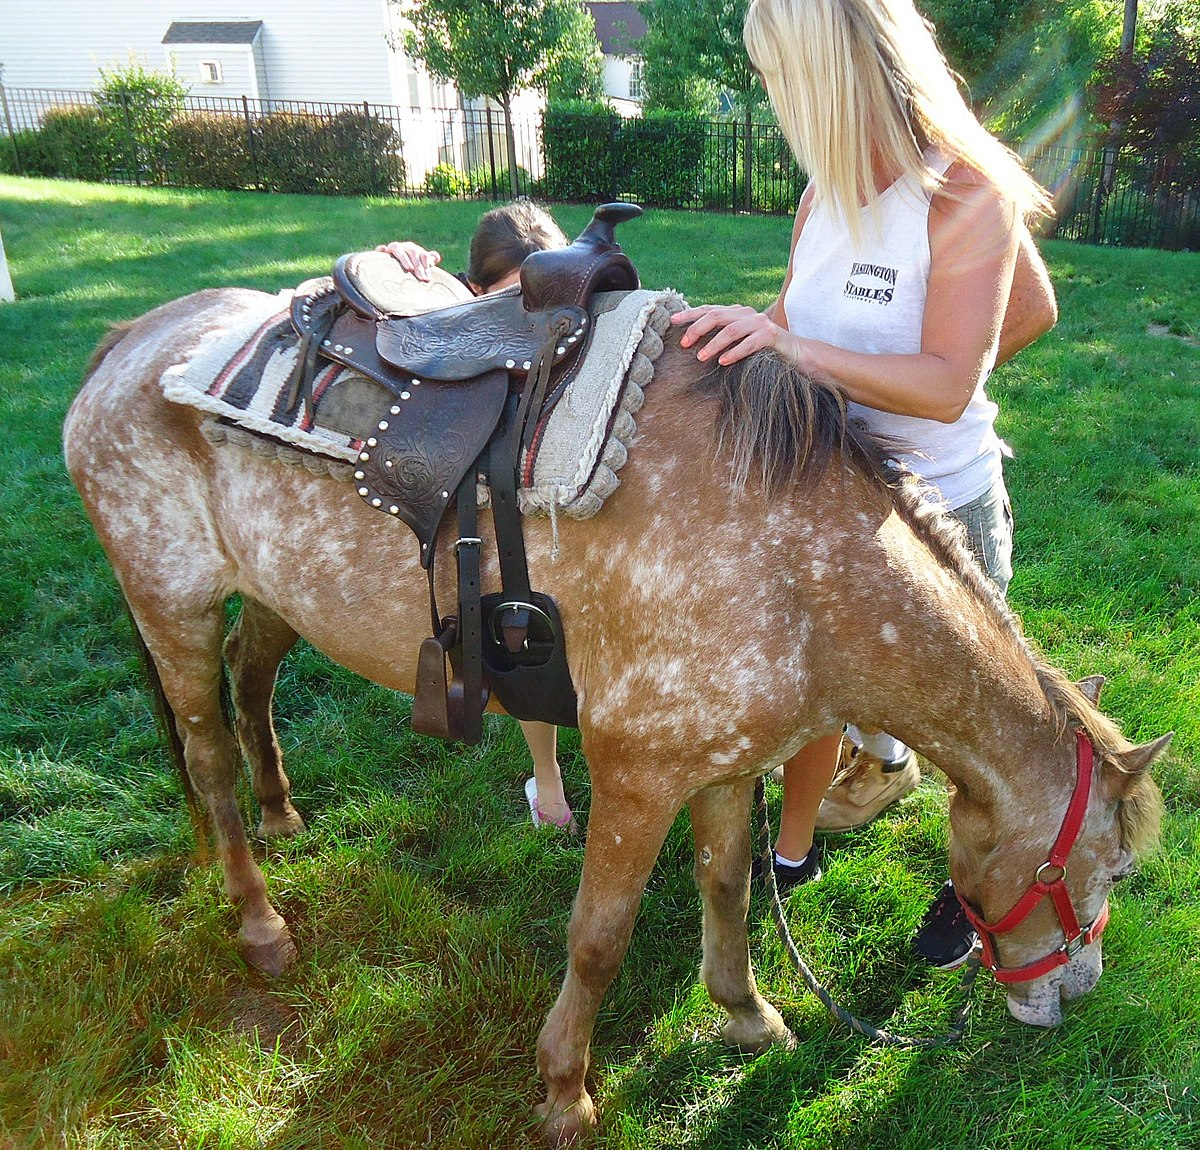 File Pony Ride At A Kids Birthday Party With Pony Eating Backyard Grass Jpg Wikimedia Commons